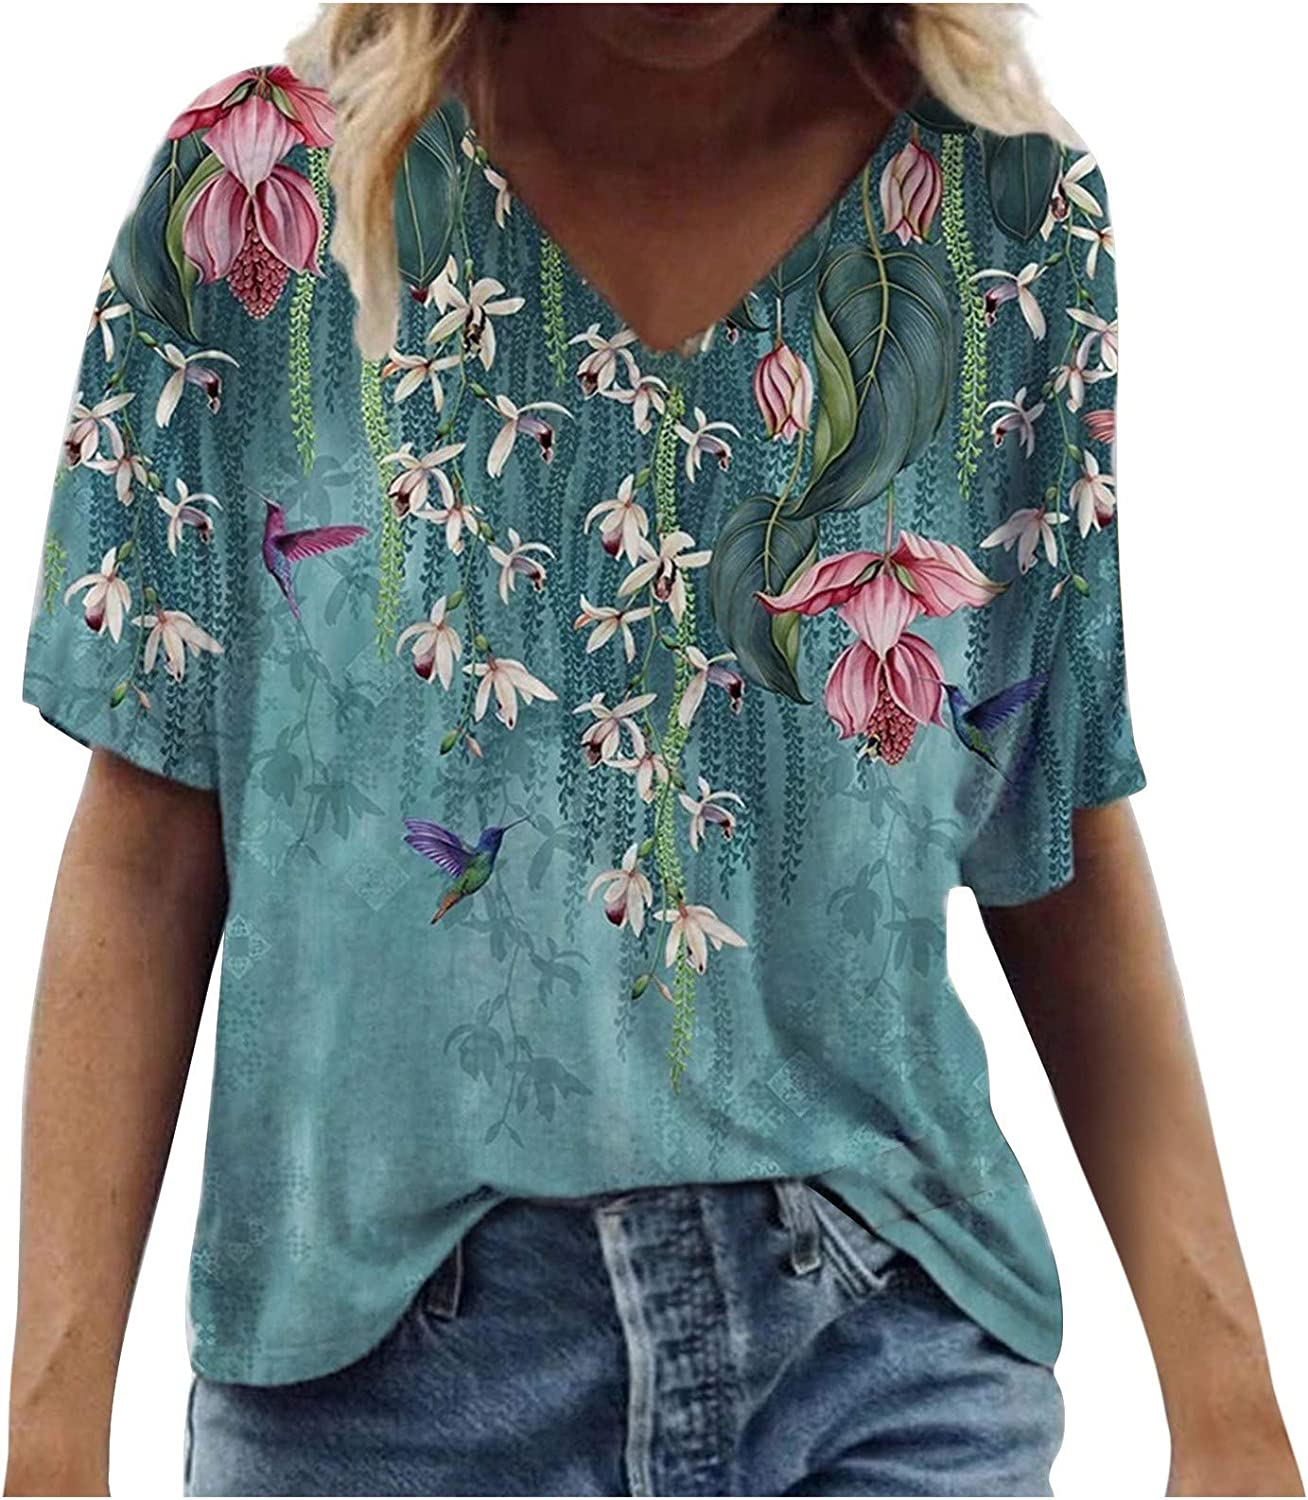 Women'sPlus Size Tops Fashion Casual Loose Short Sleeve T-Shirt Scenic Flowers Printing Round Neck